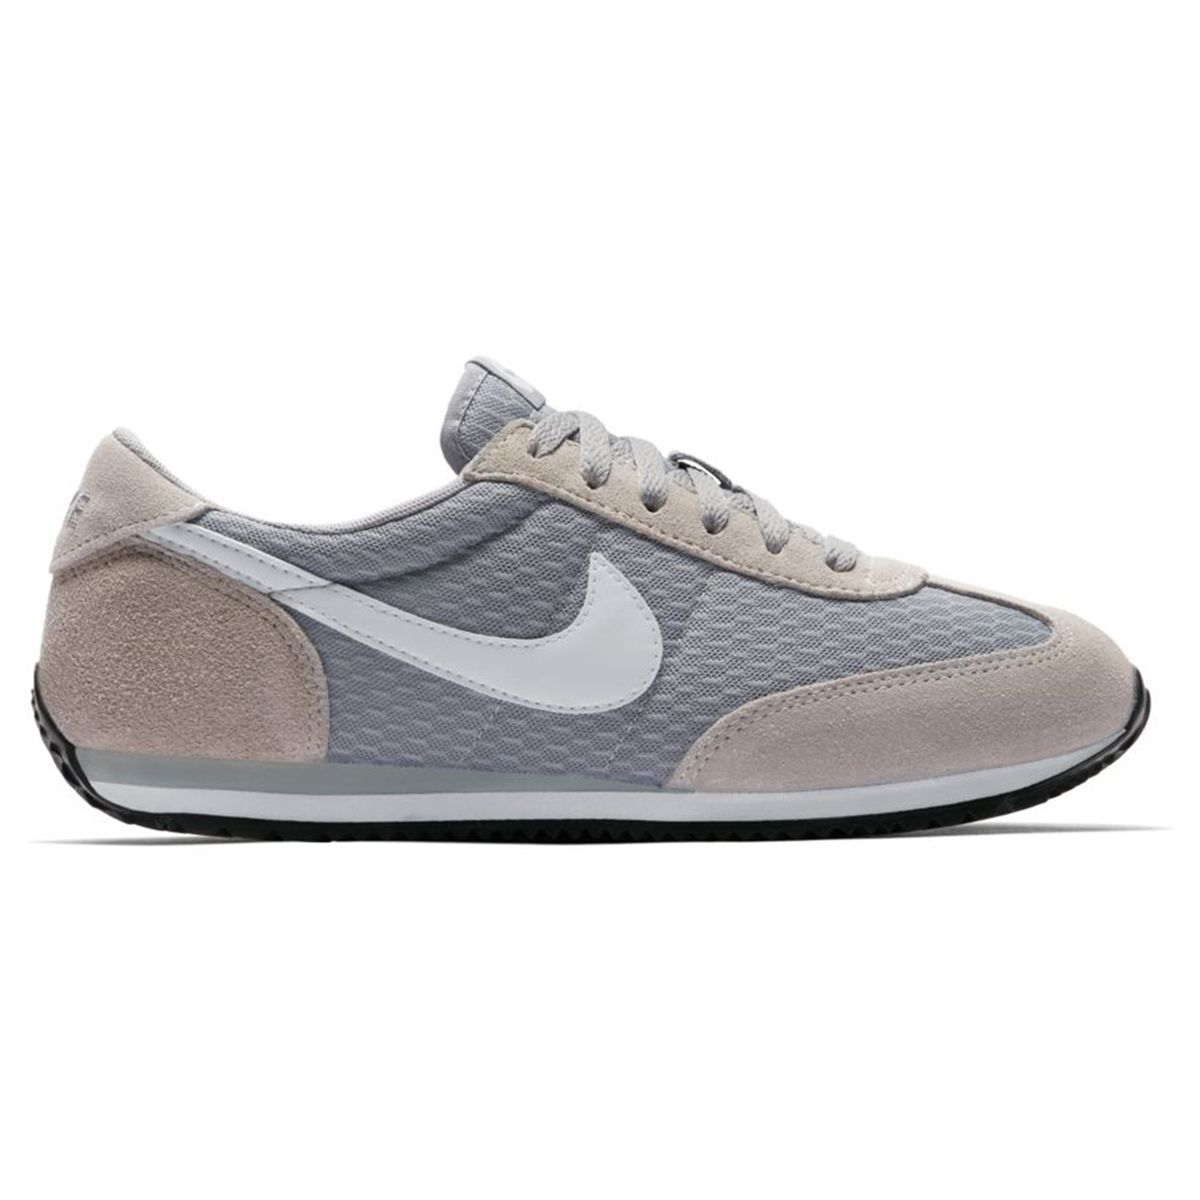 Baskets Textile NikeEt 2019Products Chaussure Oceania En J1FlKc3T